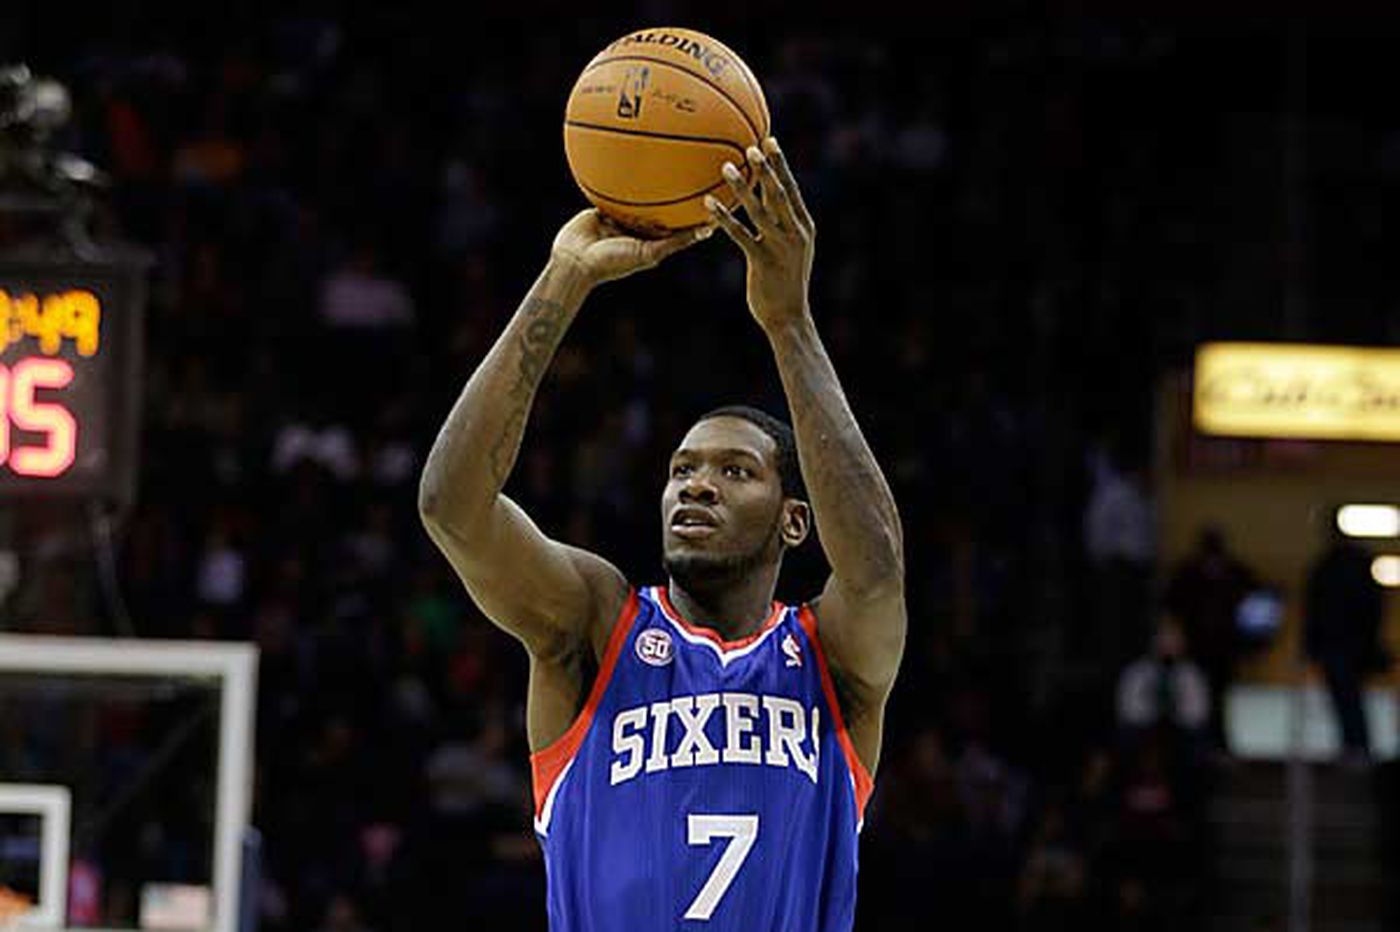 Sixers Notes: Royal Ivey seeing more playing time with 76ers